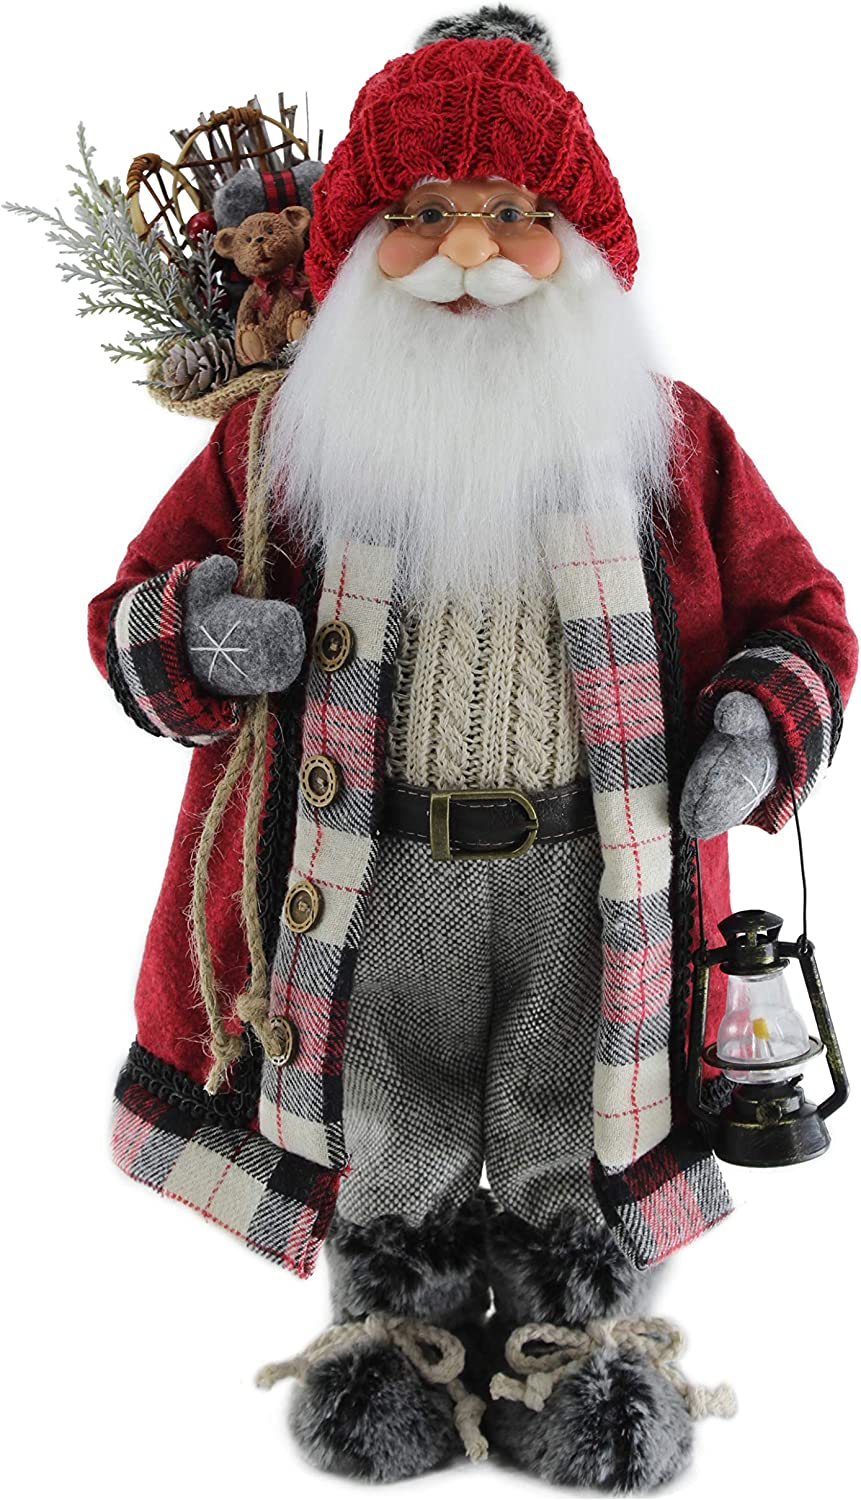 """Red Knit Cap Grey Mittens & Furry Boots 16"""" Inch Santa Claus Standing Figurine Figure Decoration 160023"""